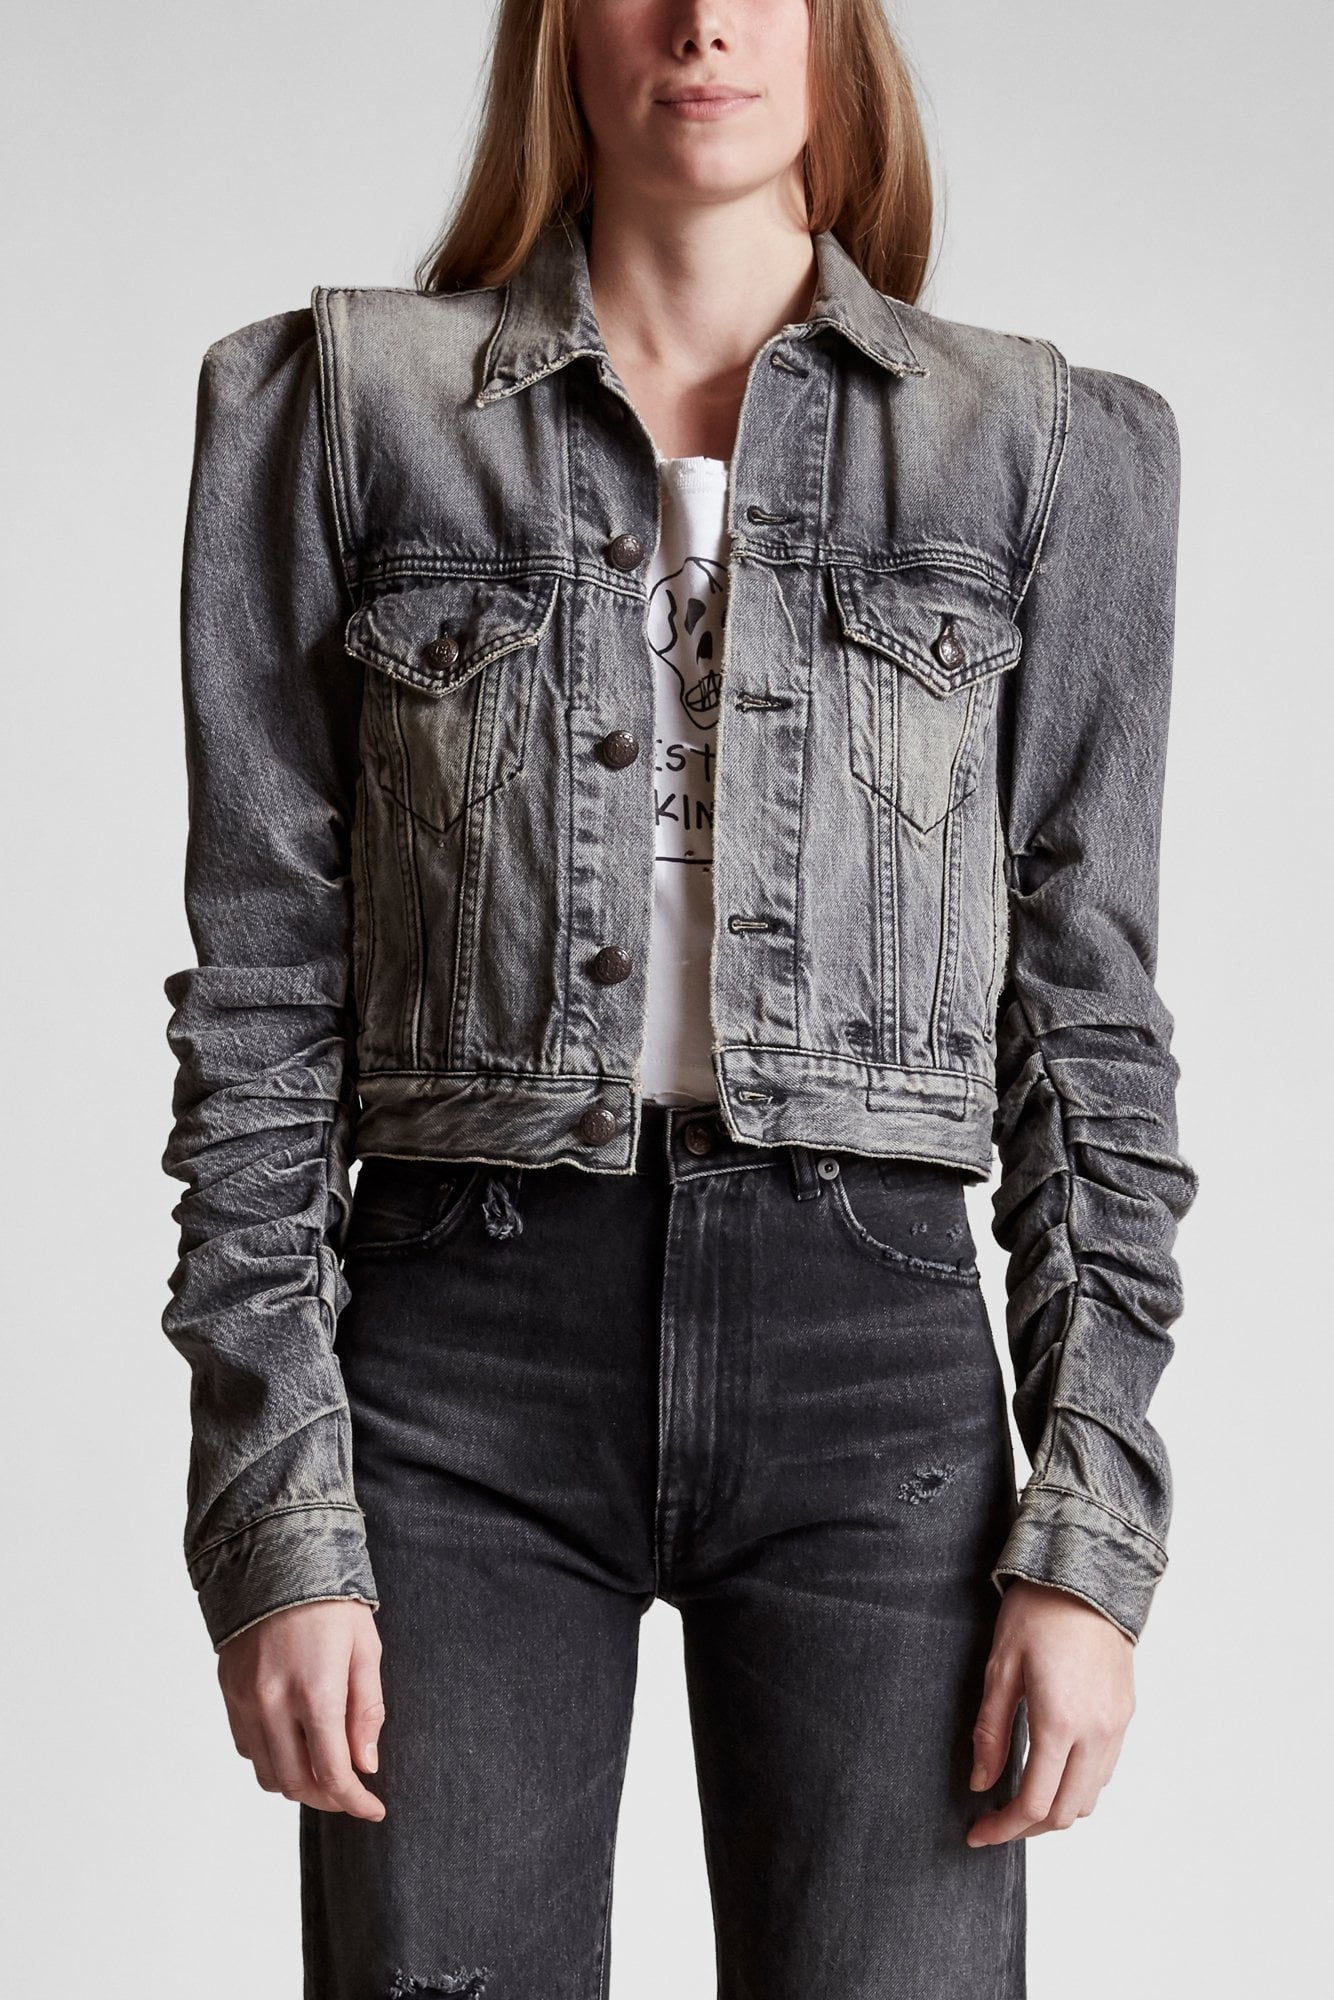 Kelsey Shirring Denim Jacket - Lena Grey